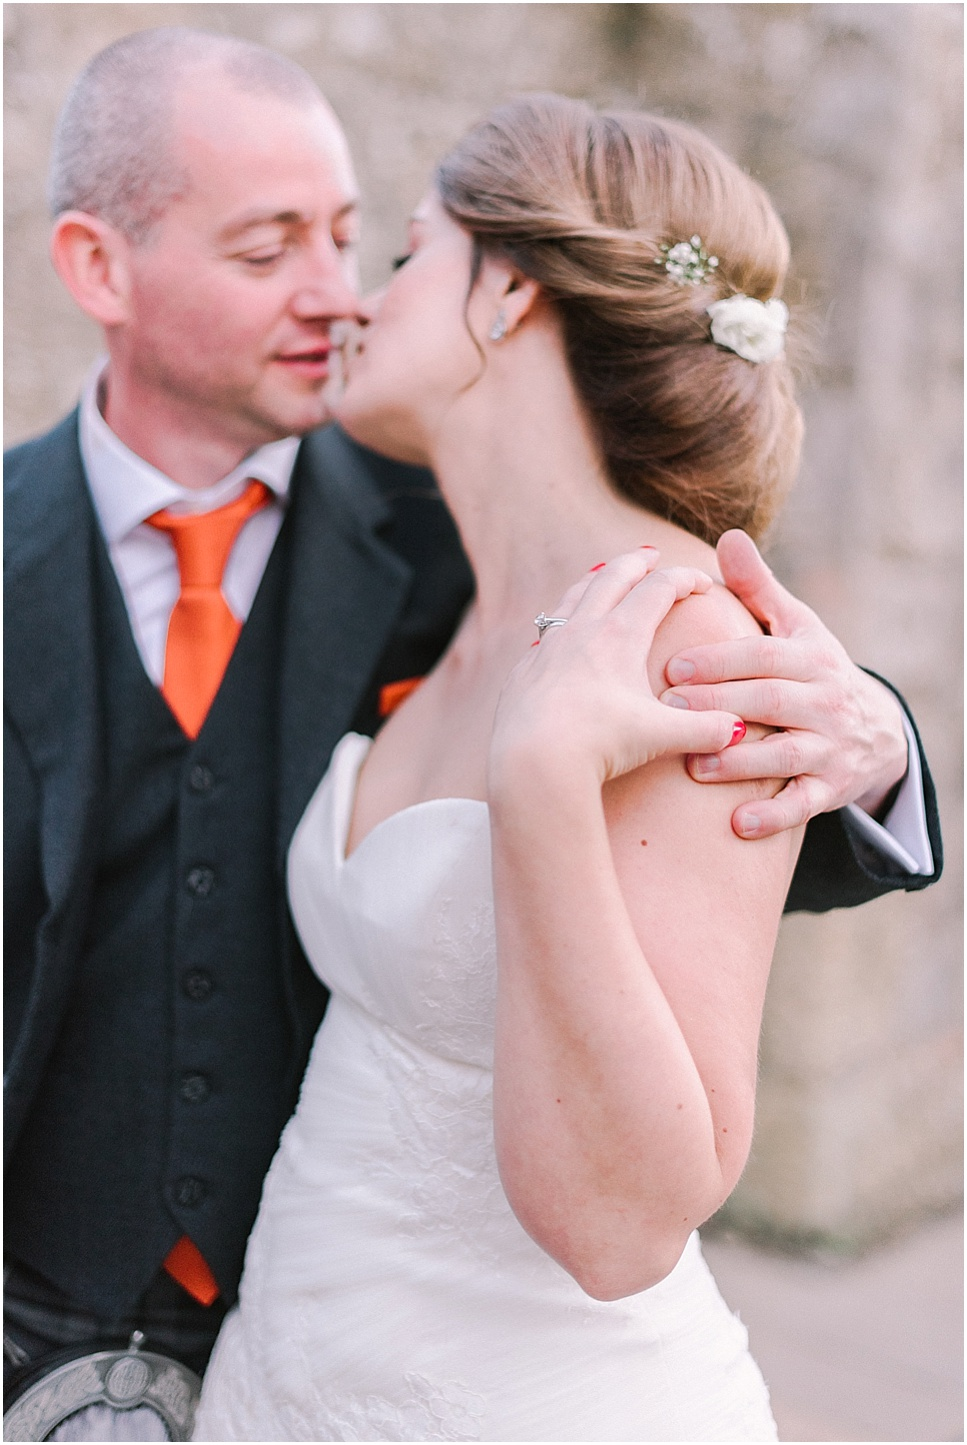 mareikemurray_wedding_photography_linlithgow_burgh_halls_060.jpg